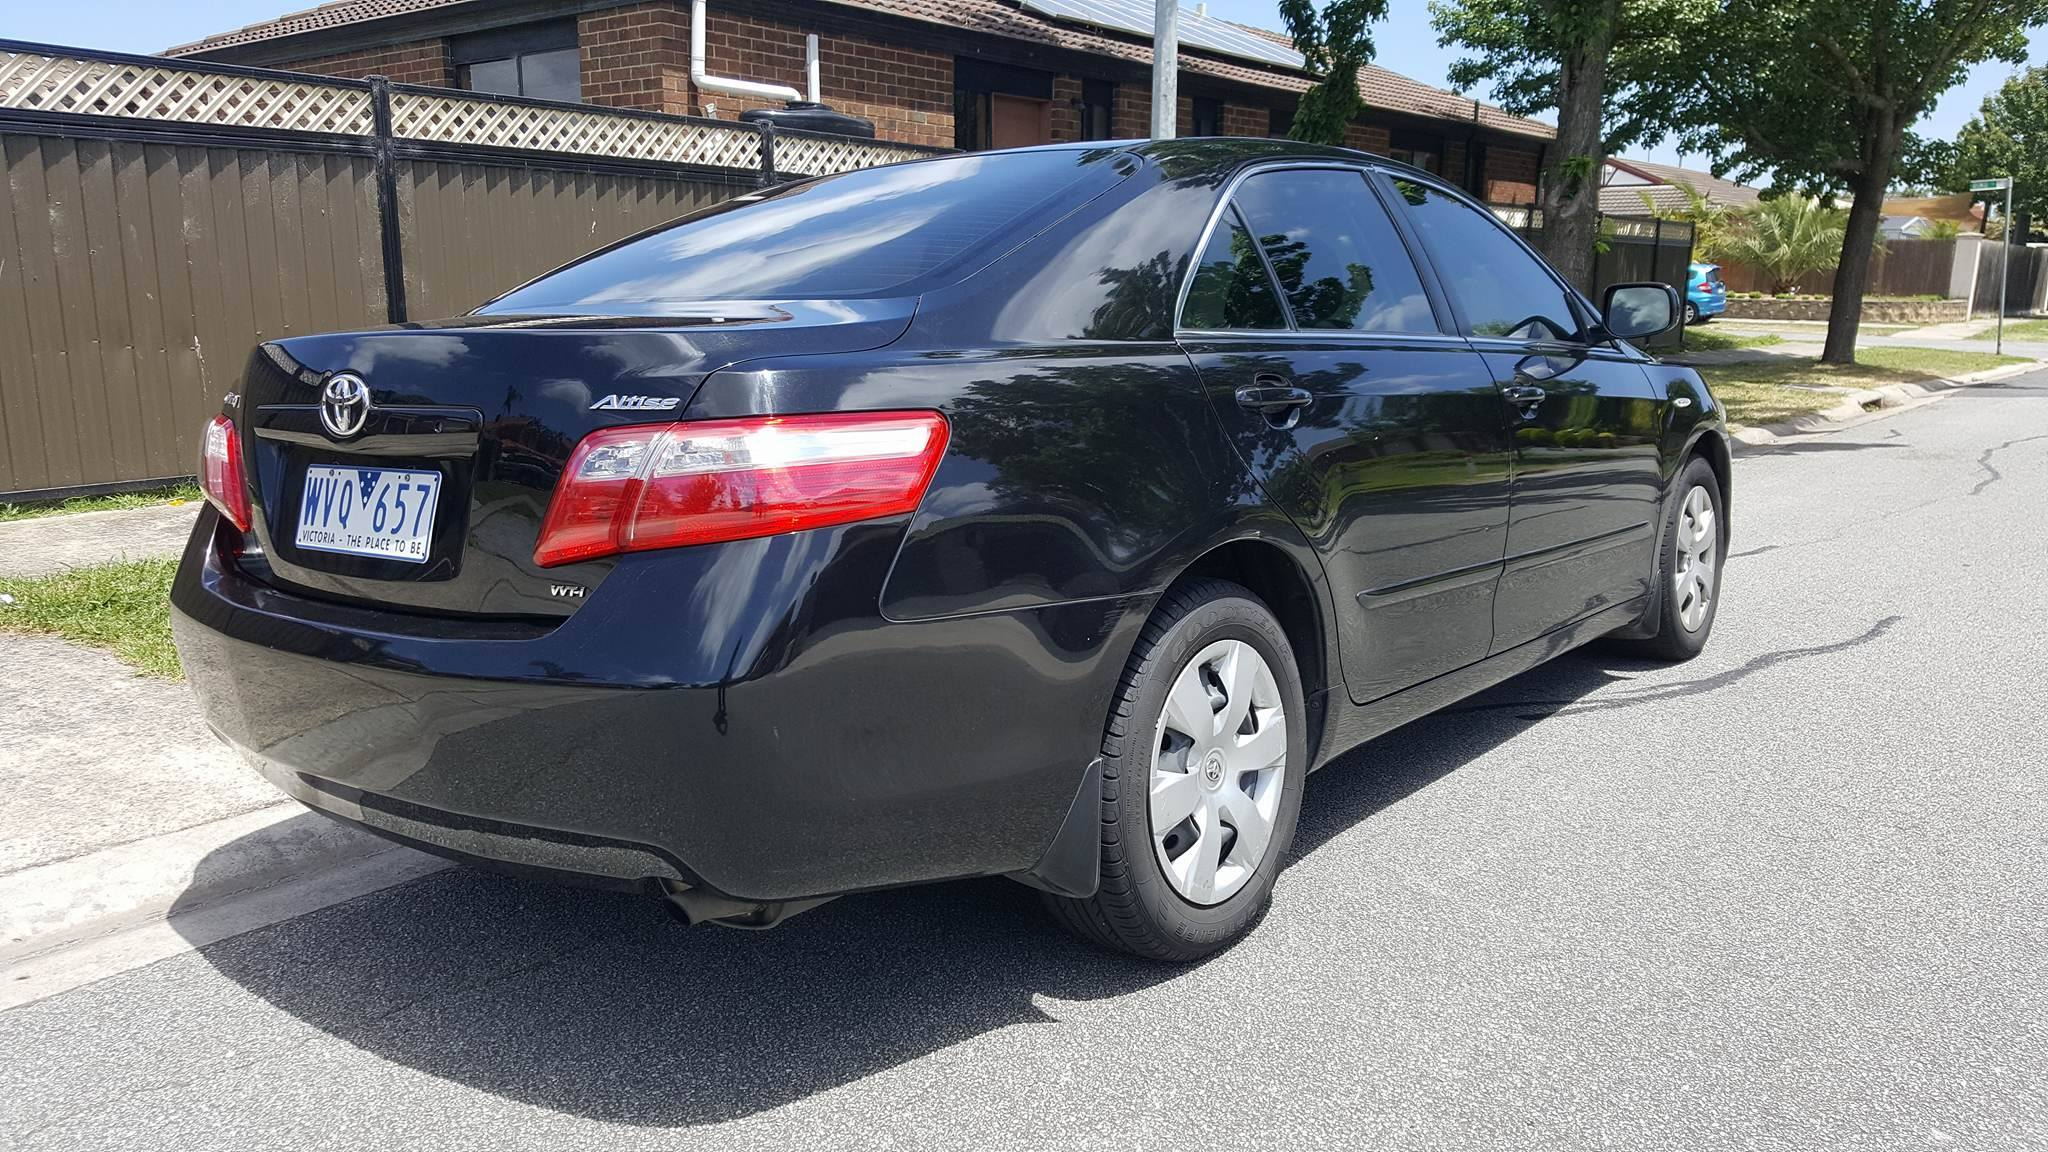 Used Toyota Camry For Sale Near Me >> 2008 Toyota Camry Altise – Find Me Cars